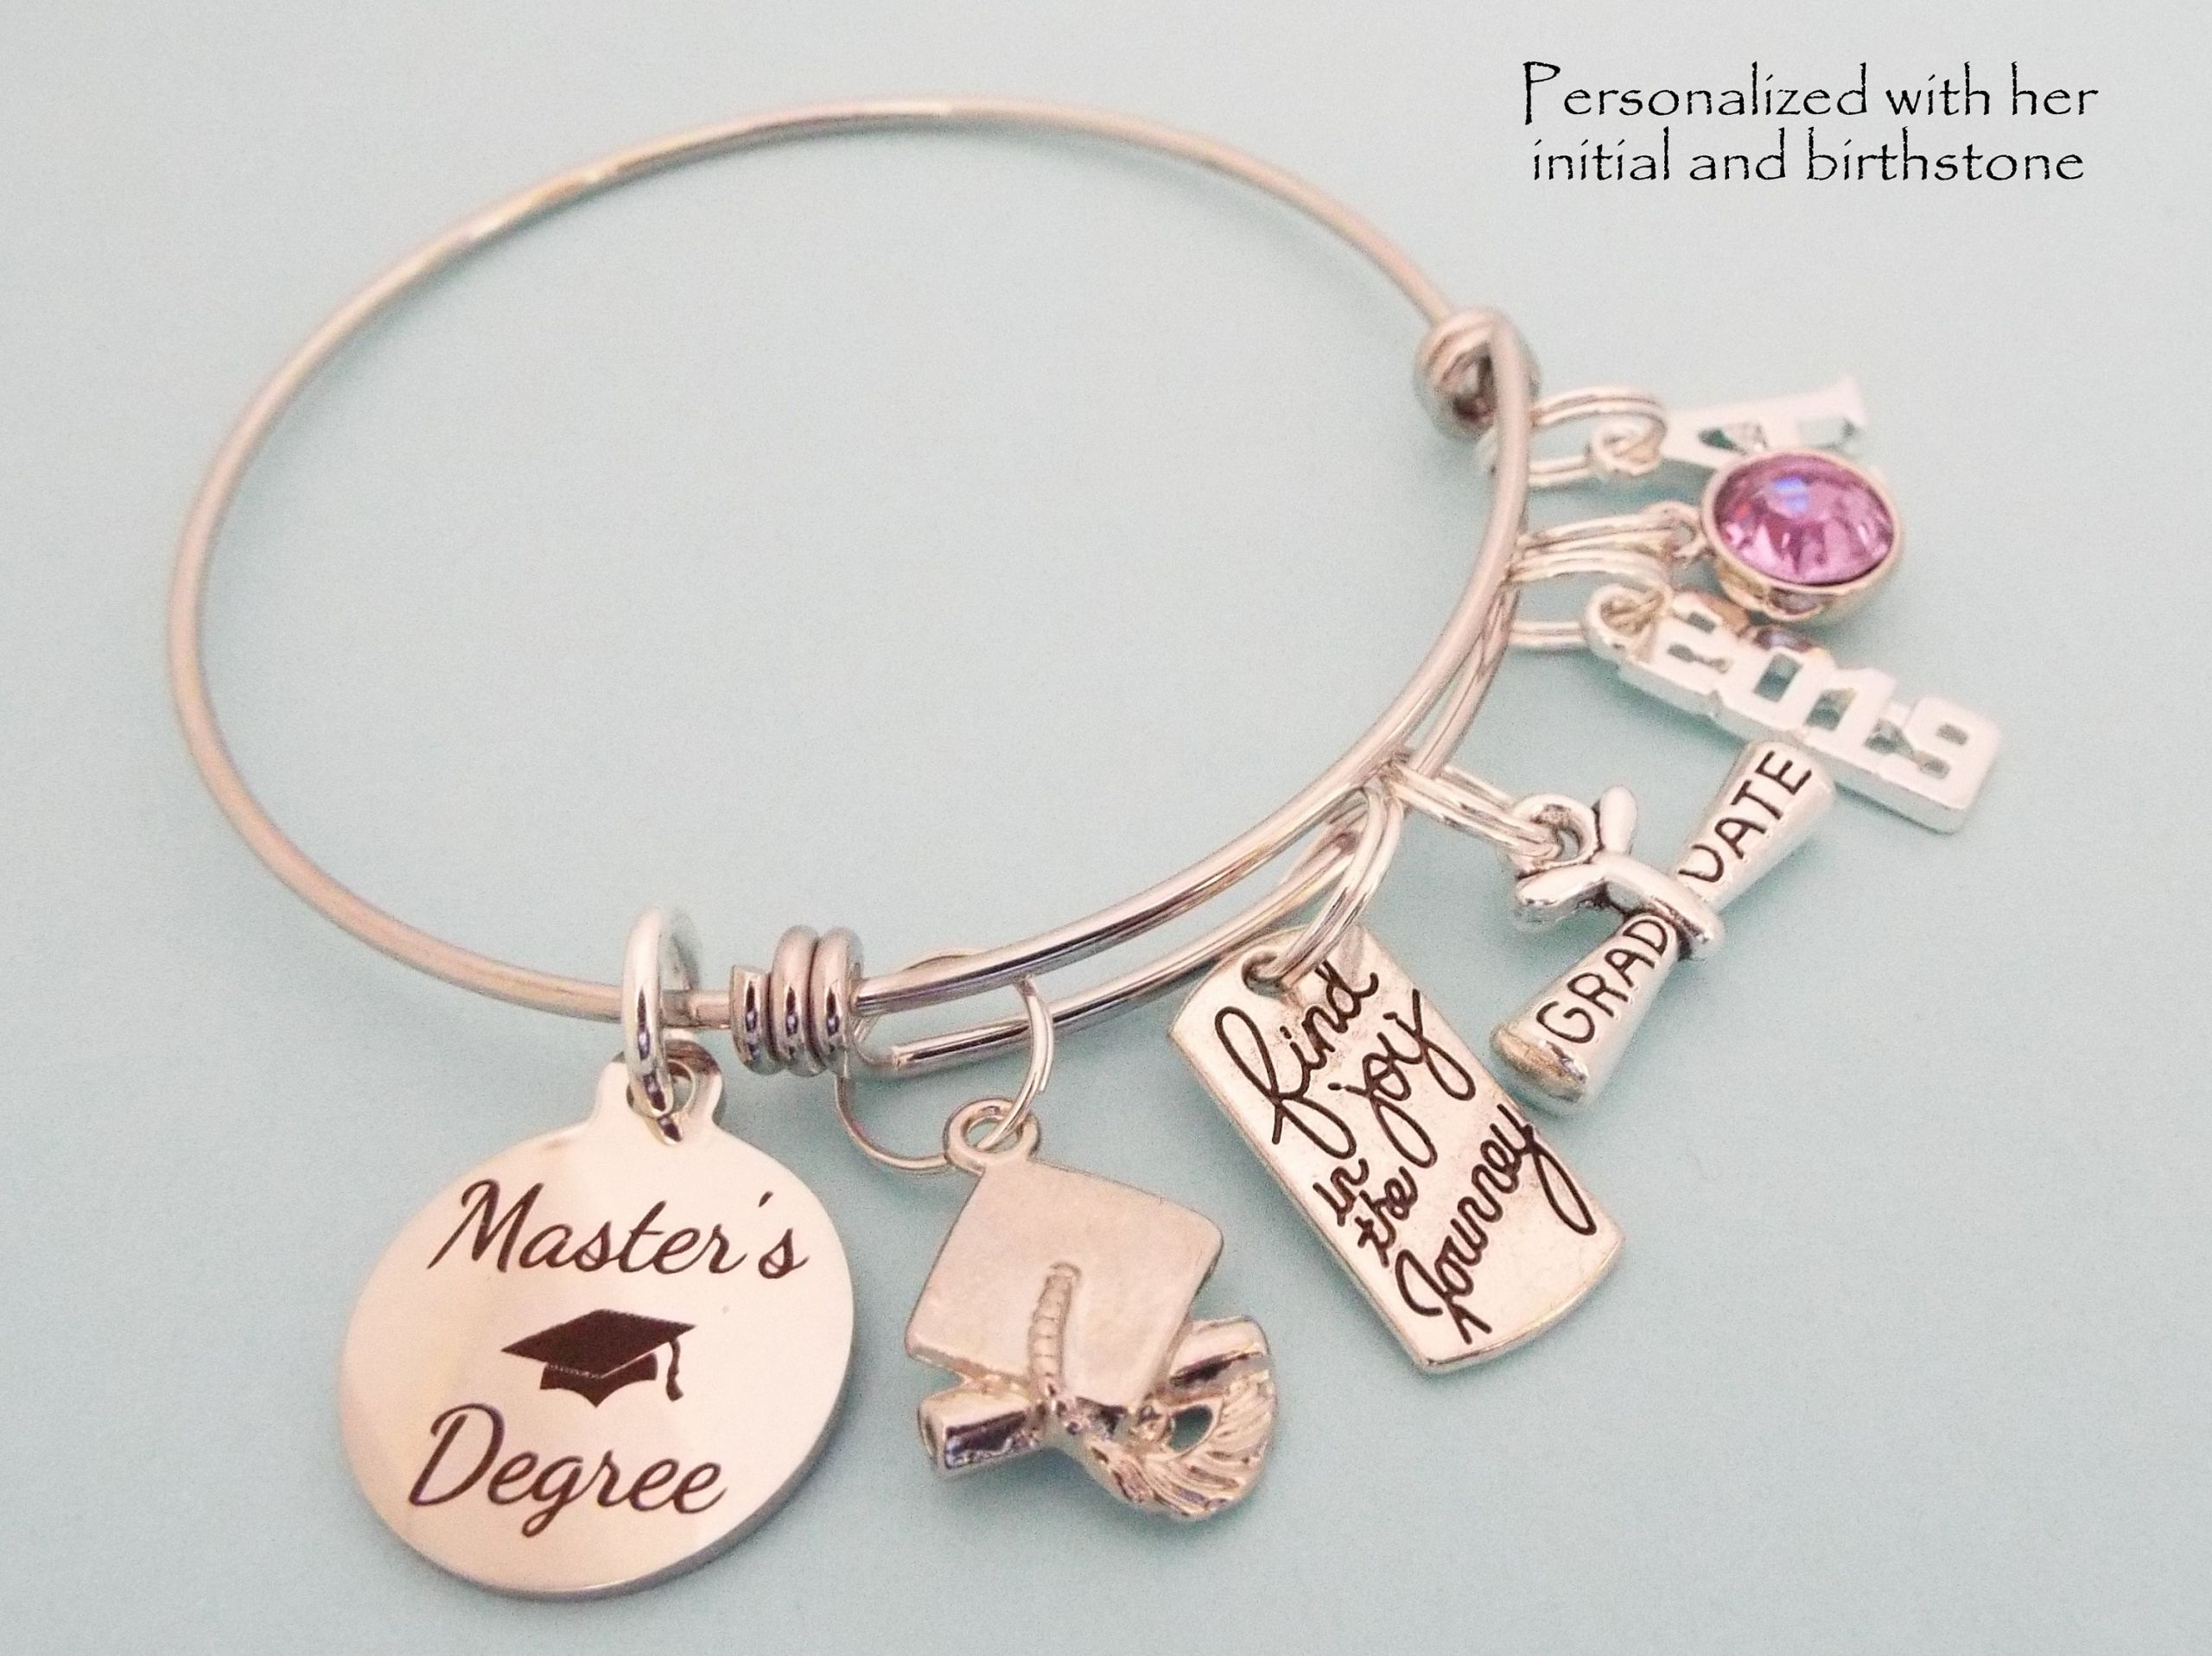 Graduation Gift Ideas For Her Masters Degree  Master s Degree Graduation Gift Masters Degree Charm